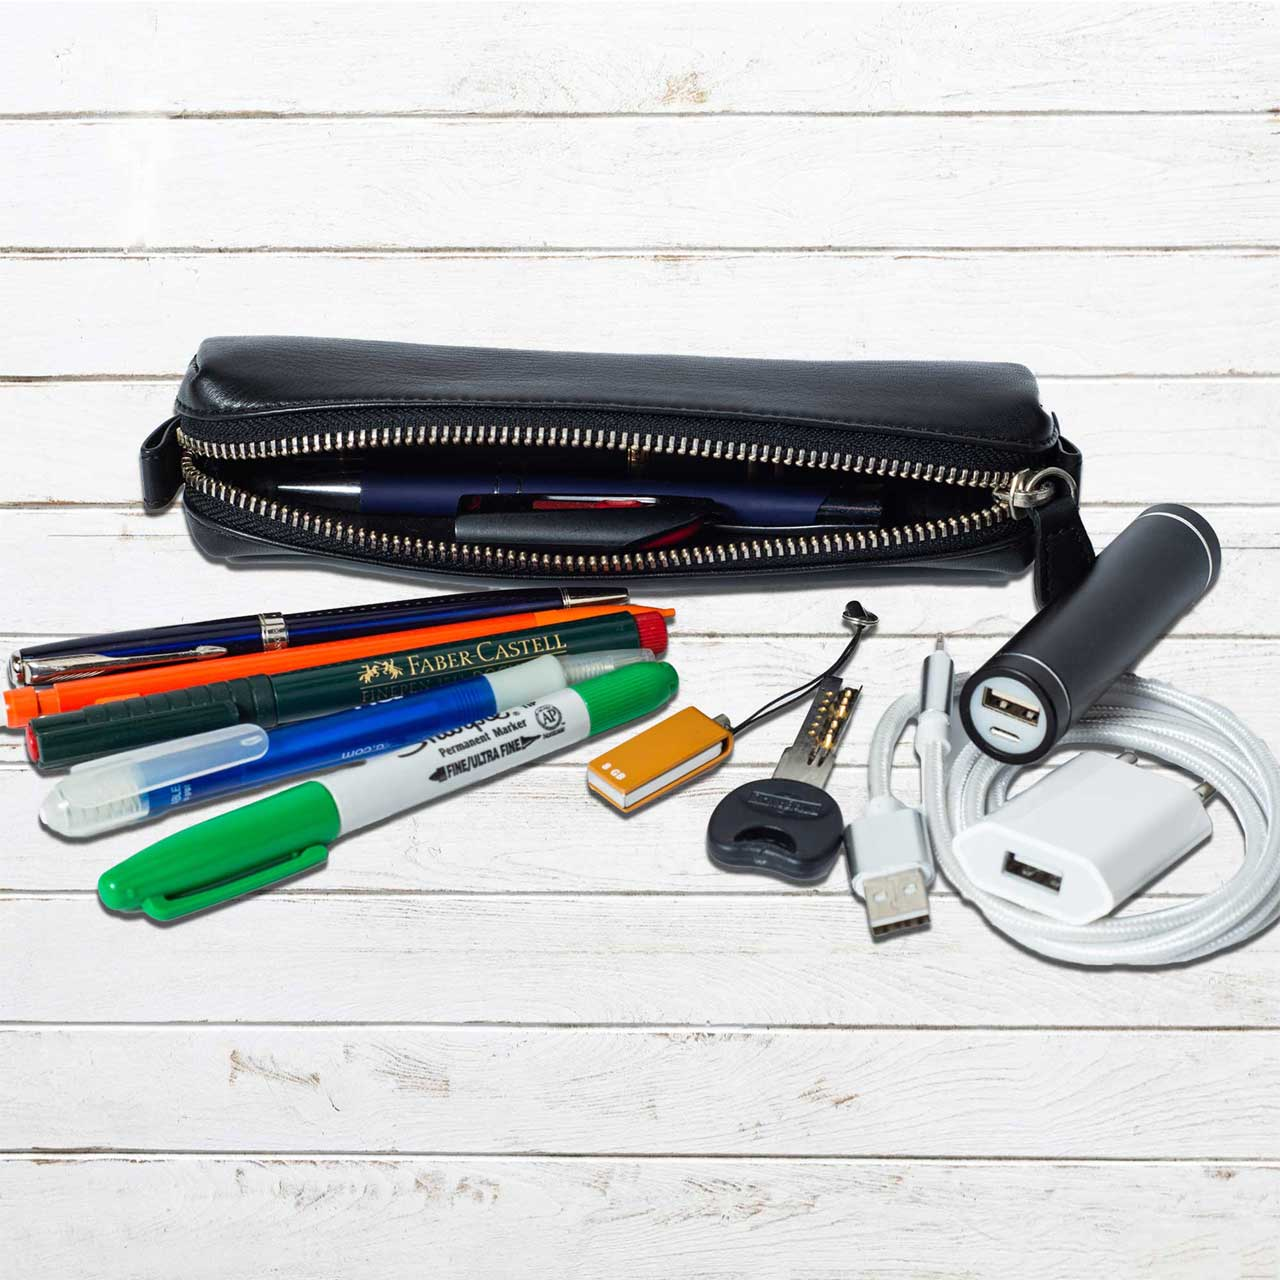 DiLoro Pen & Pencil Case: YKK zippered pencil, pen case made from top quality, full grain nappa leather. Ideal for when you travel to keep your favorite pen, pencils, fountain pen, calligraphy pens, gel pens, stylus pen protected in one pouch.